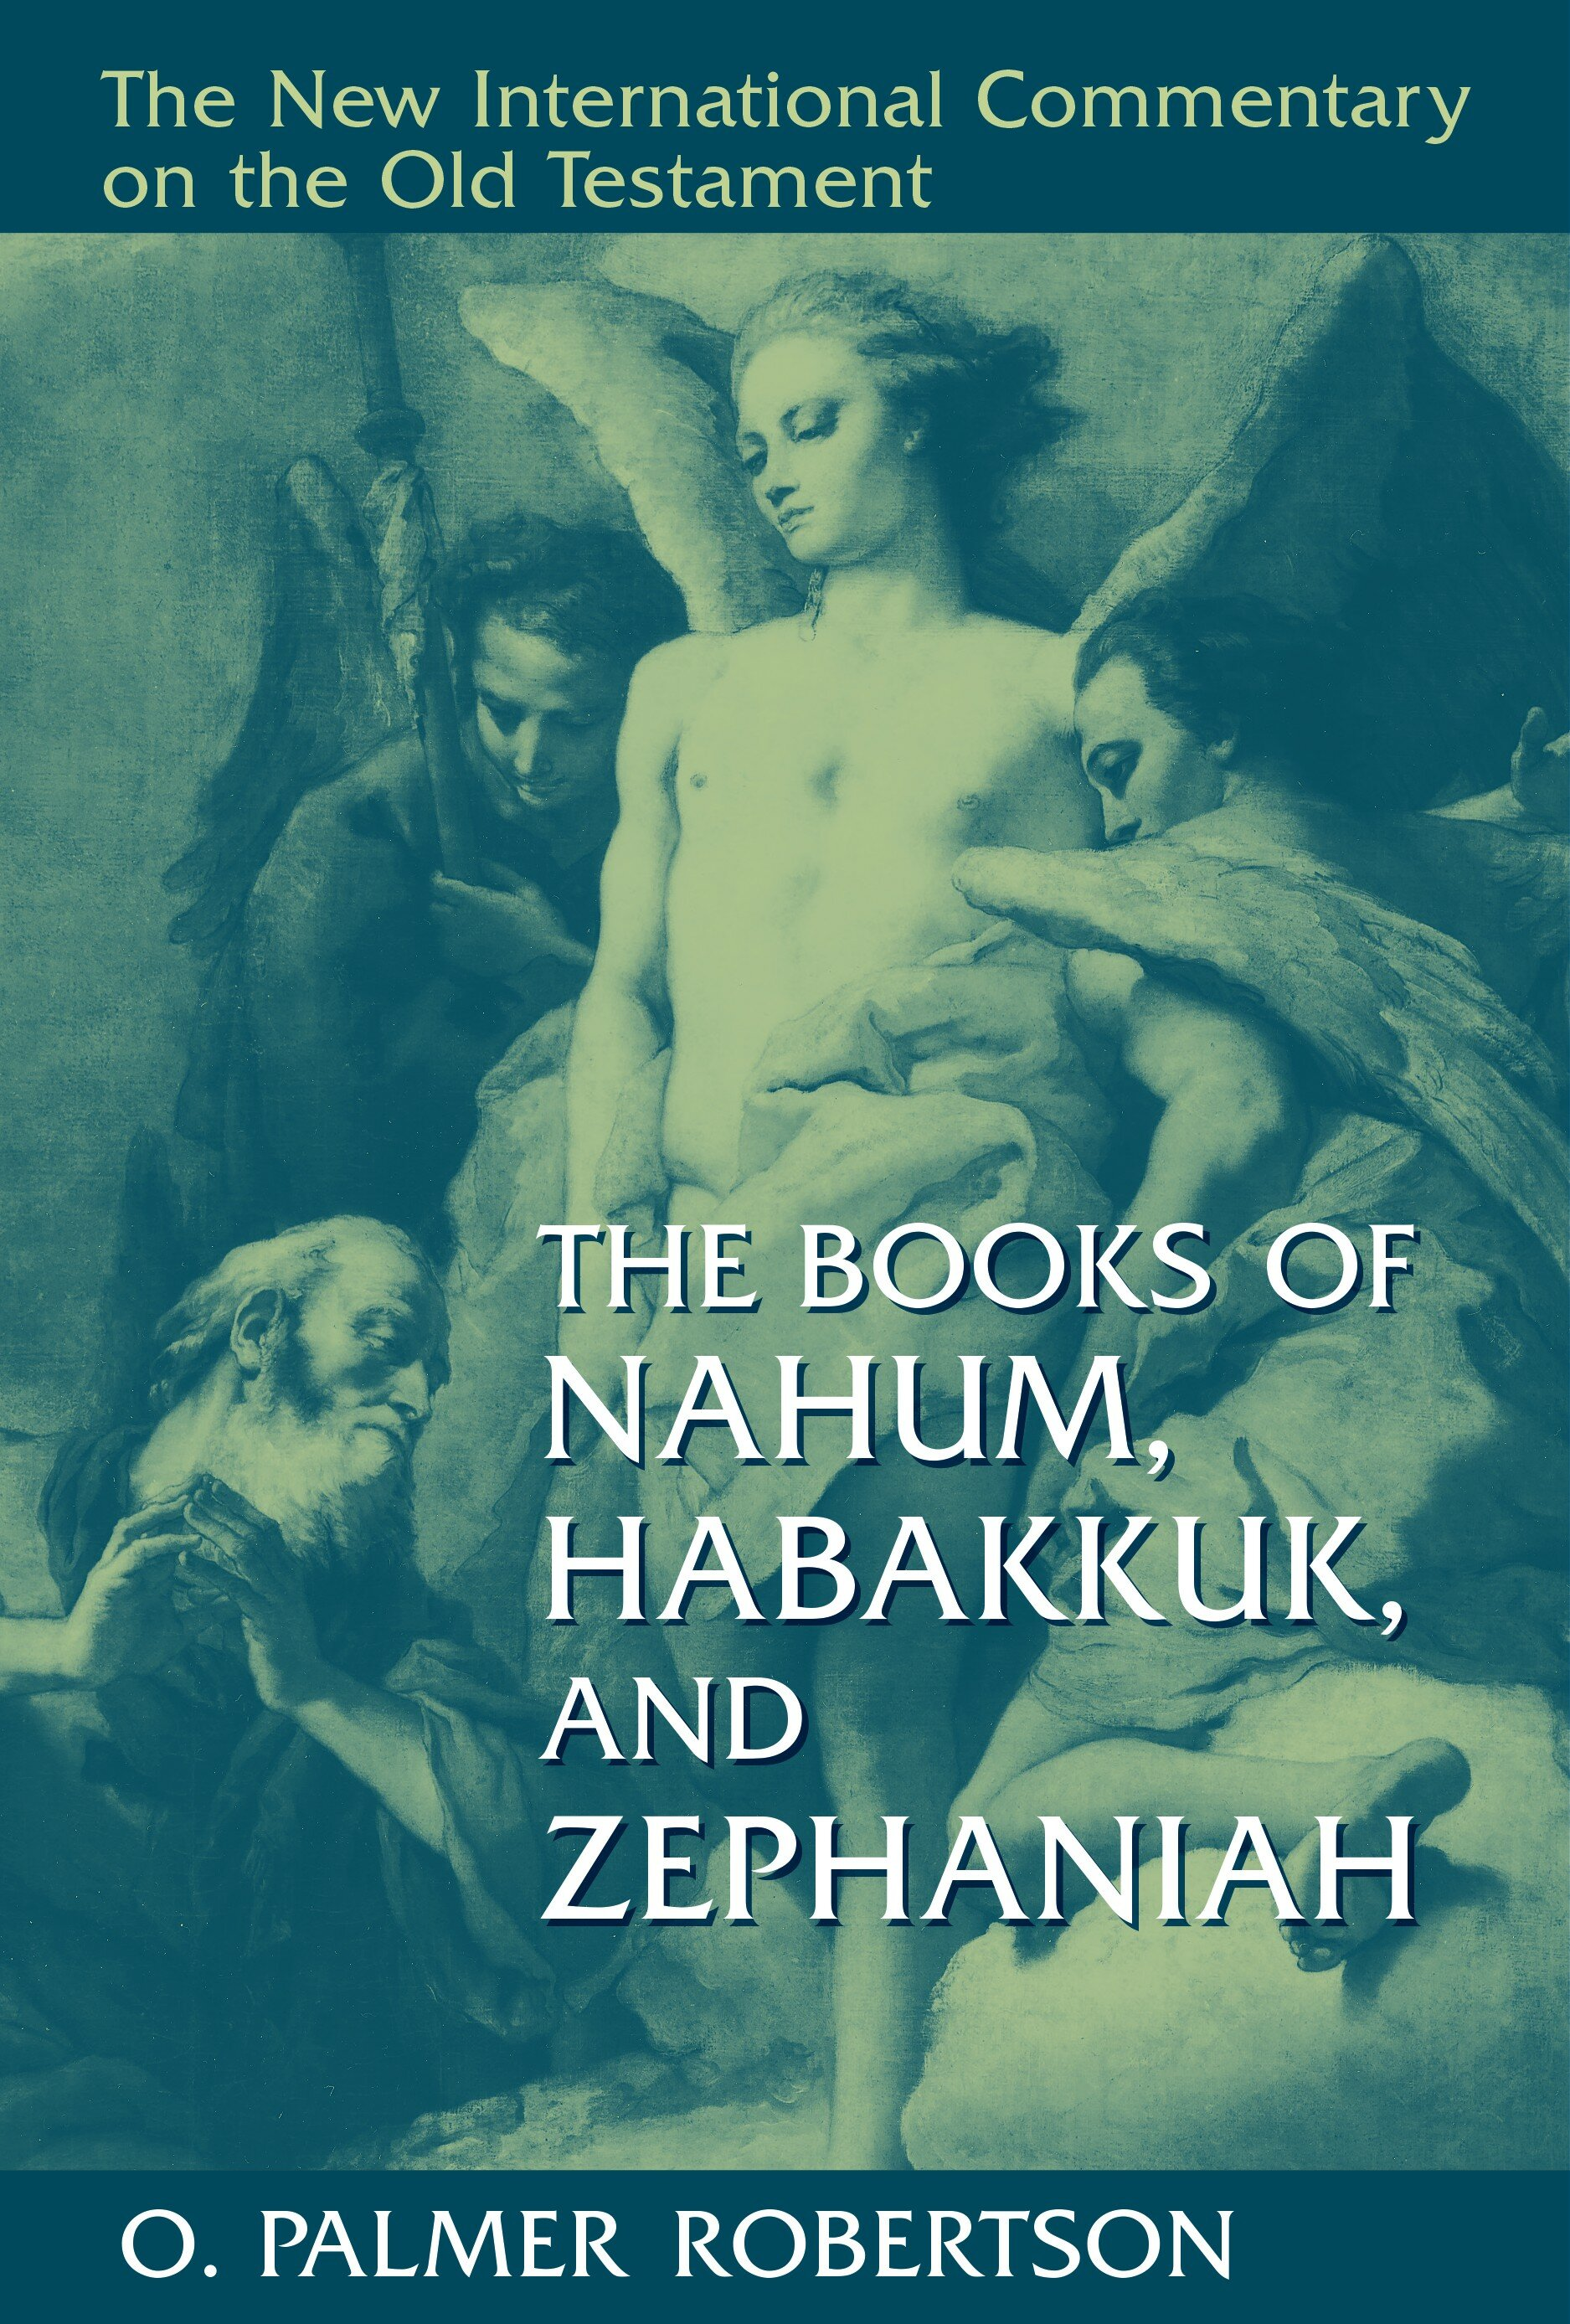 The Books of Nahum, Habakkuk and Zephaniah (The New International Commentary on the Old Testament | NICOT)